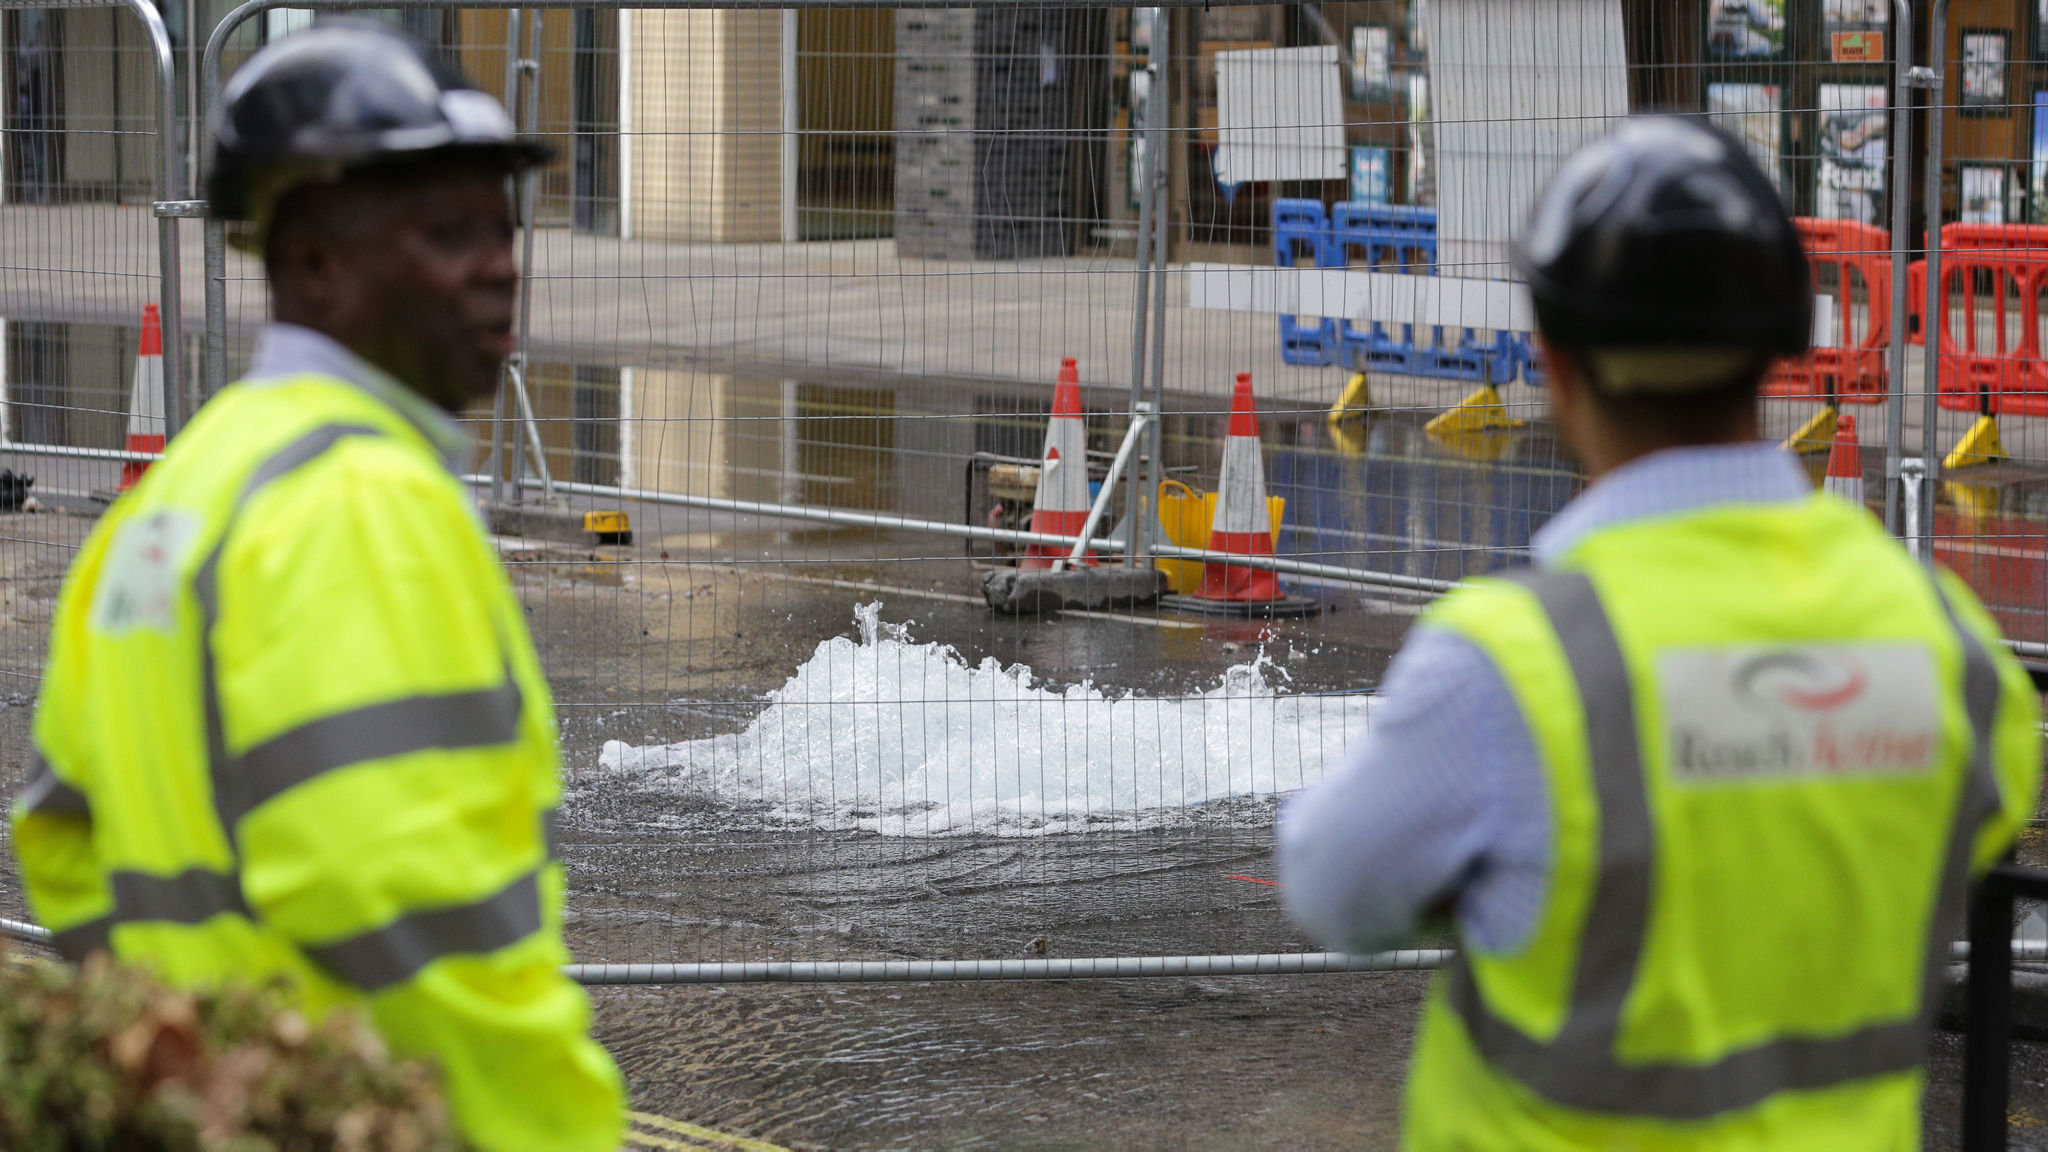 Disruptions to water supply on rise in England and Wales